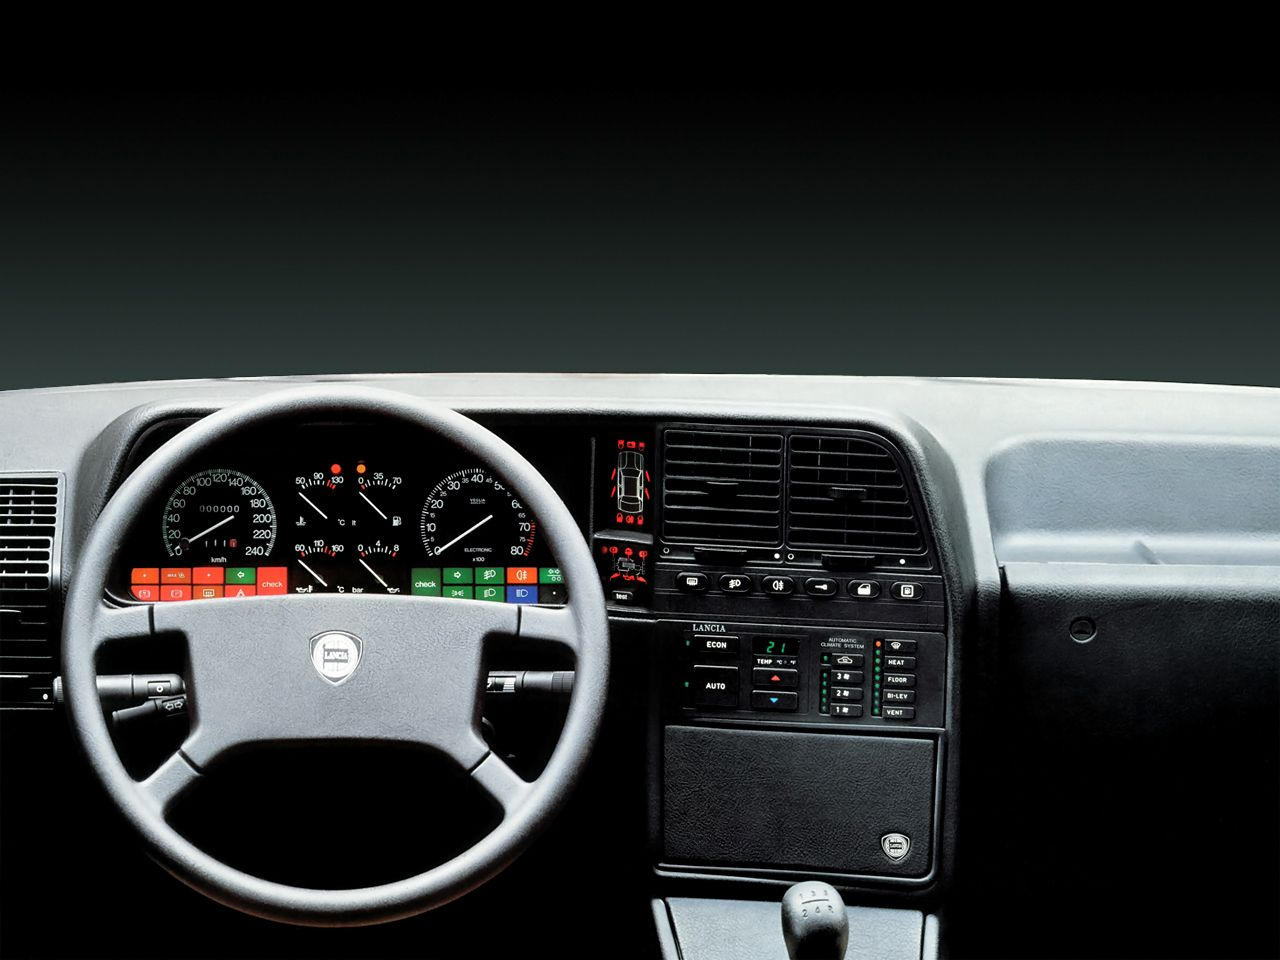 lancia thema - Pesquisa Google | Lancia | Pinterest | Google and Cars